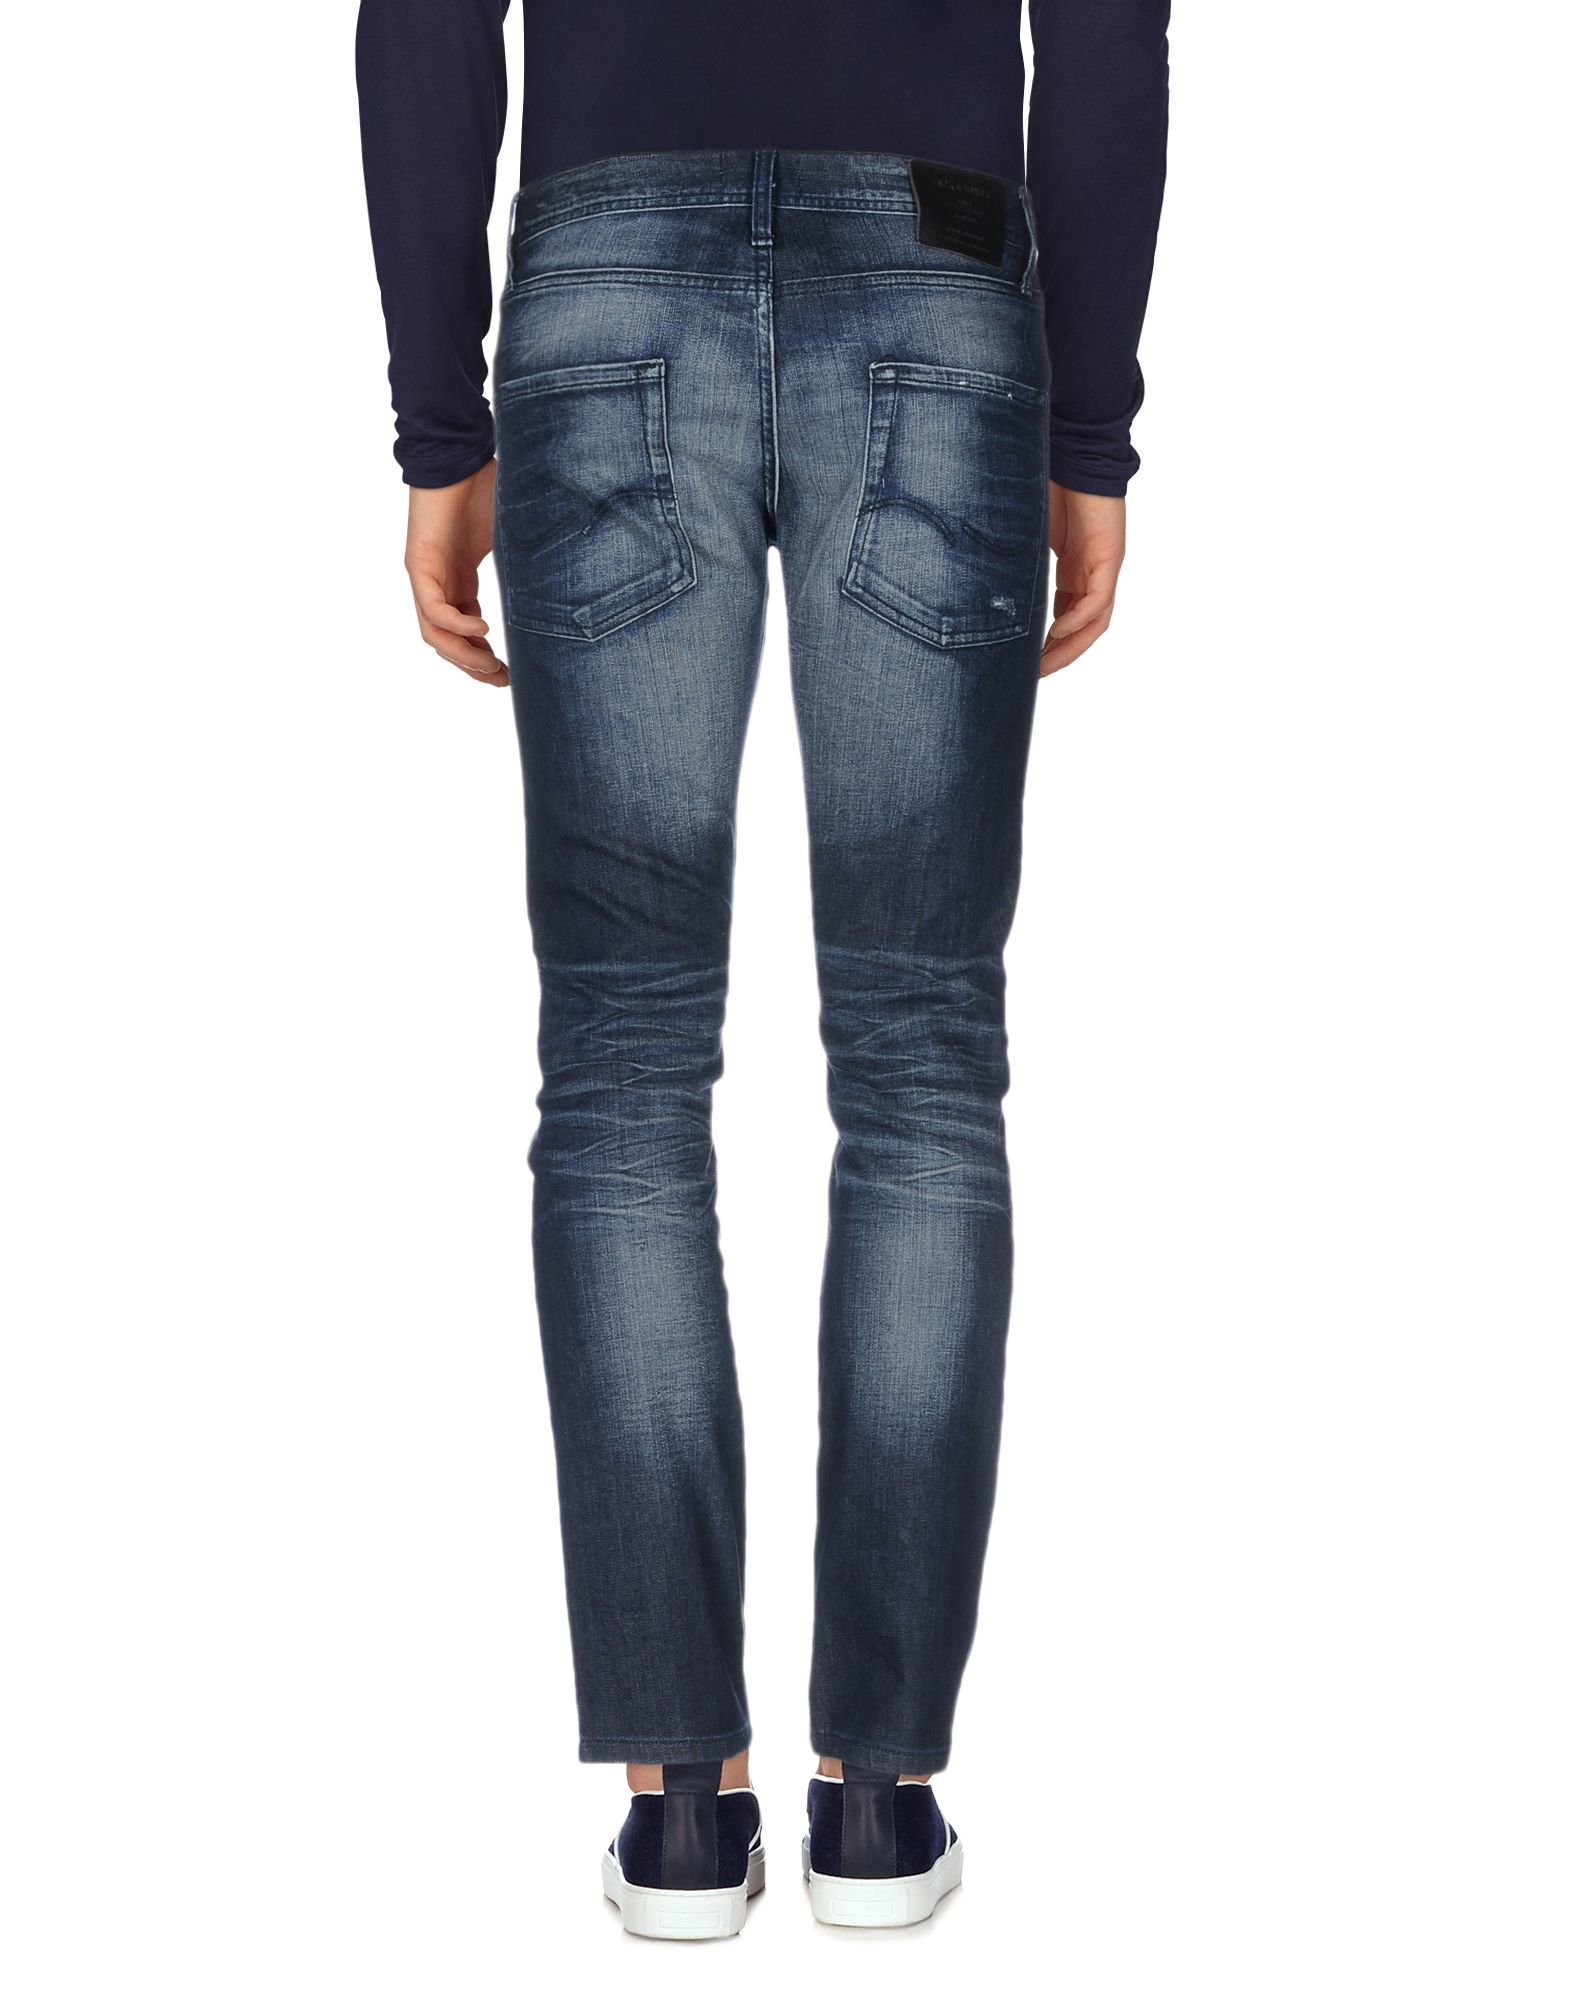 jack jones denim trousers in blue for men lyst. Black Bedroom Furniture Sets. Home Design Ideas